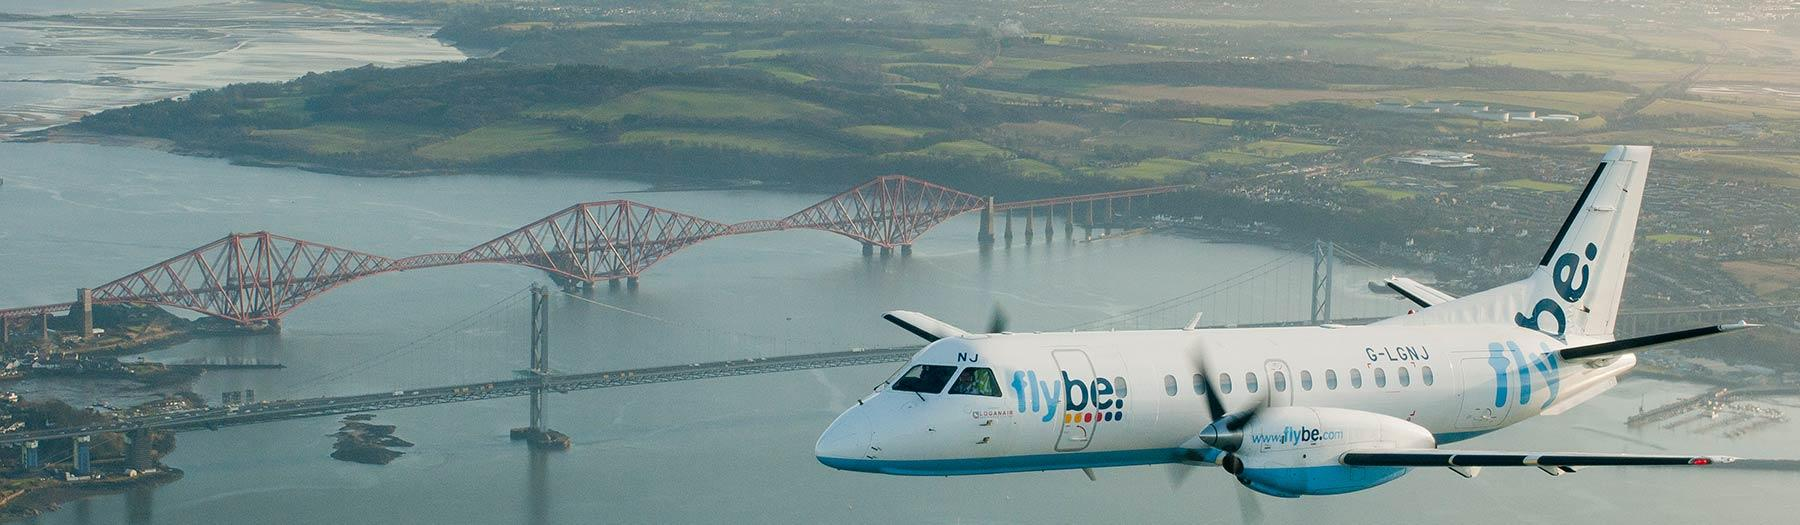 Flybe plane flying over Forth Bridge